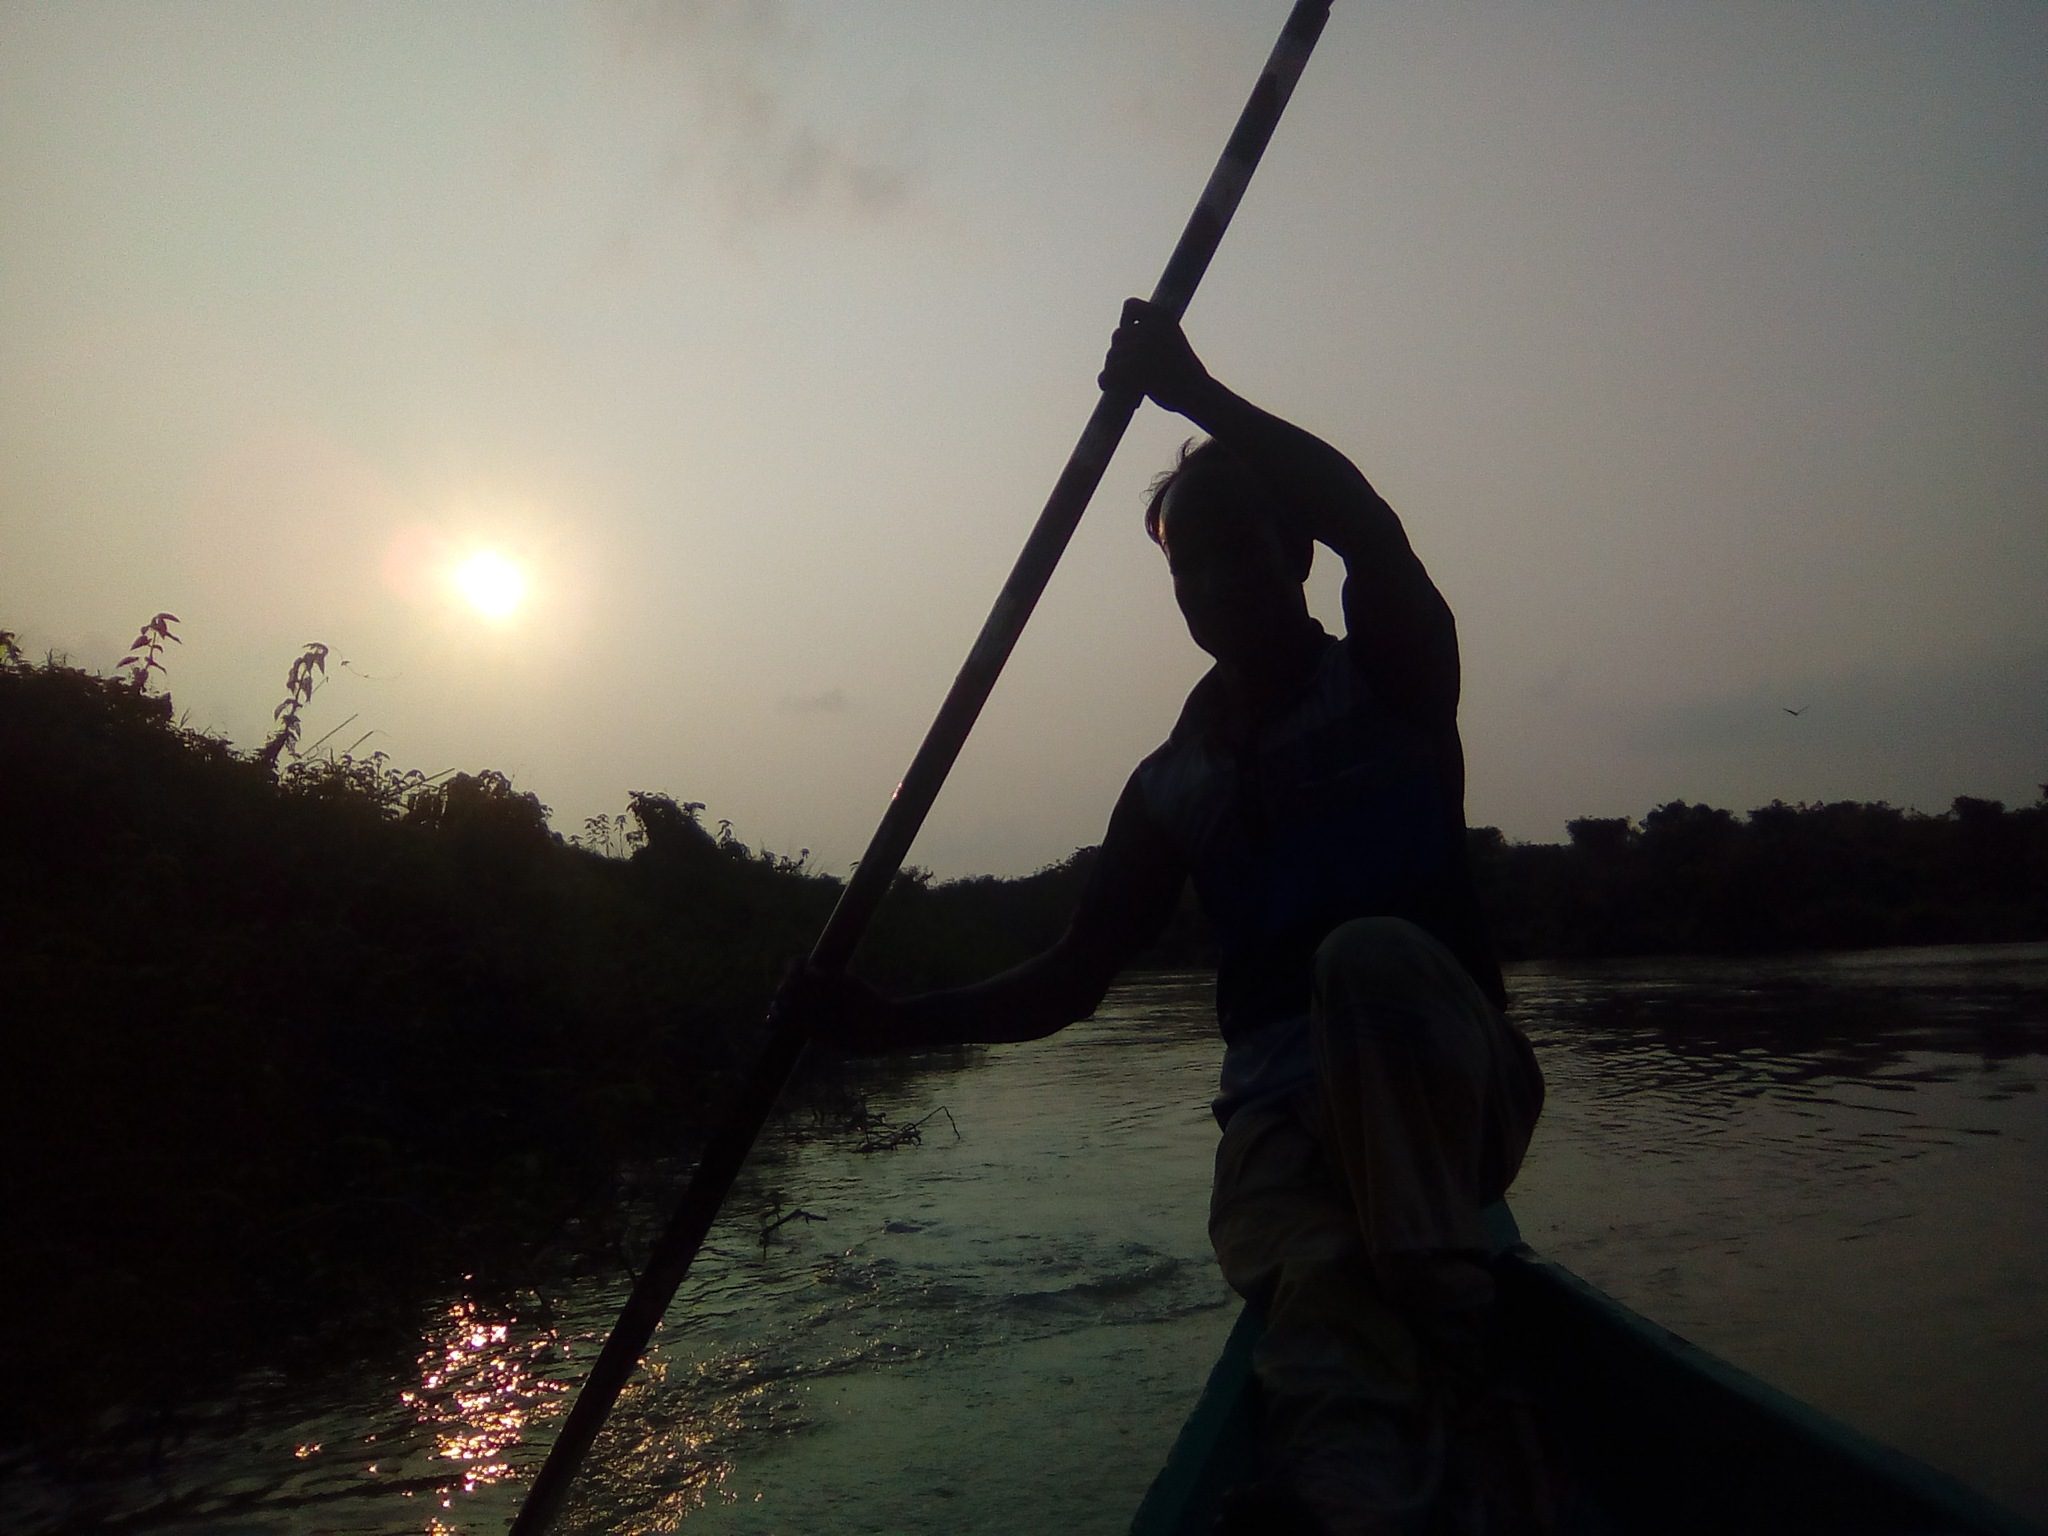 Boatman and evening time by Md Kamrul Islam